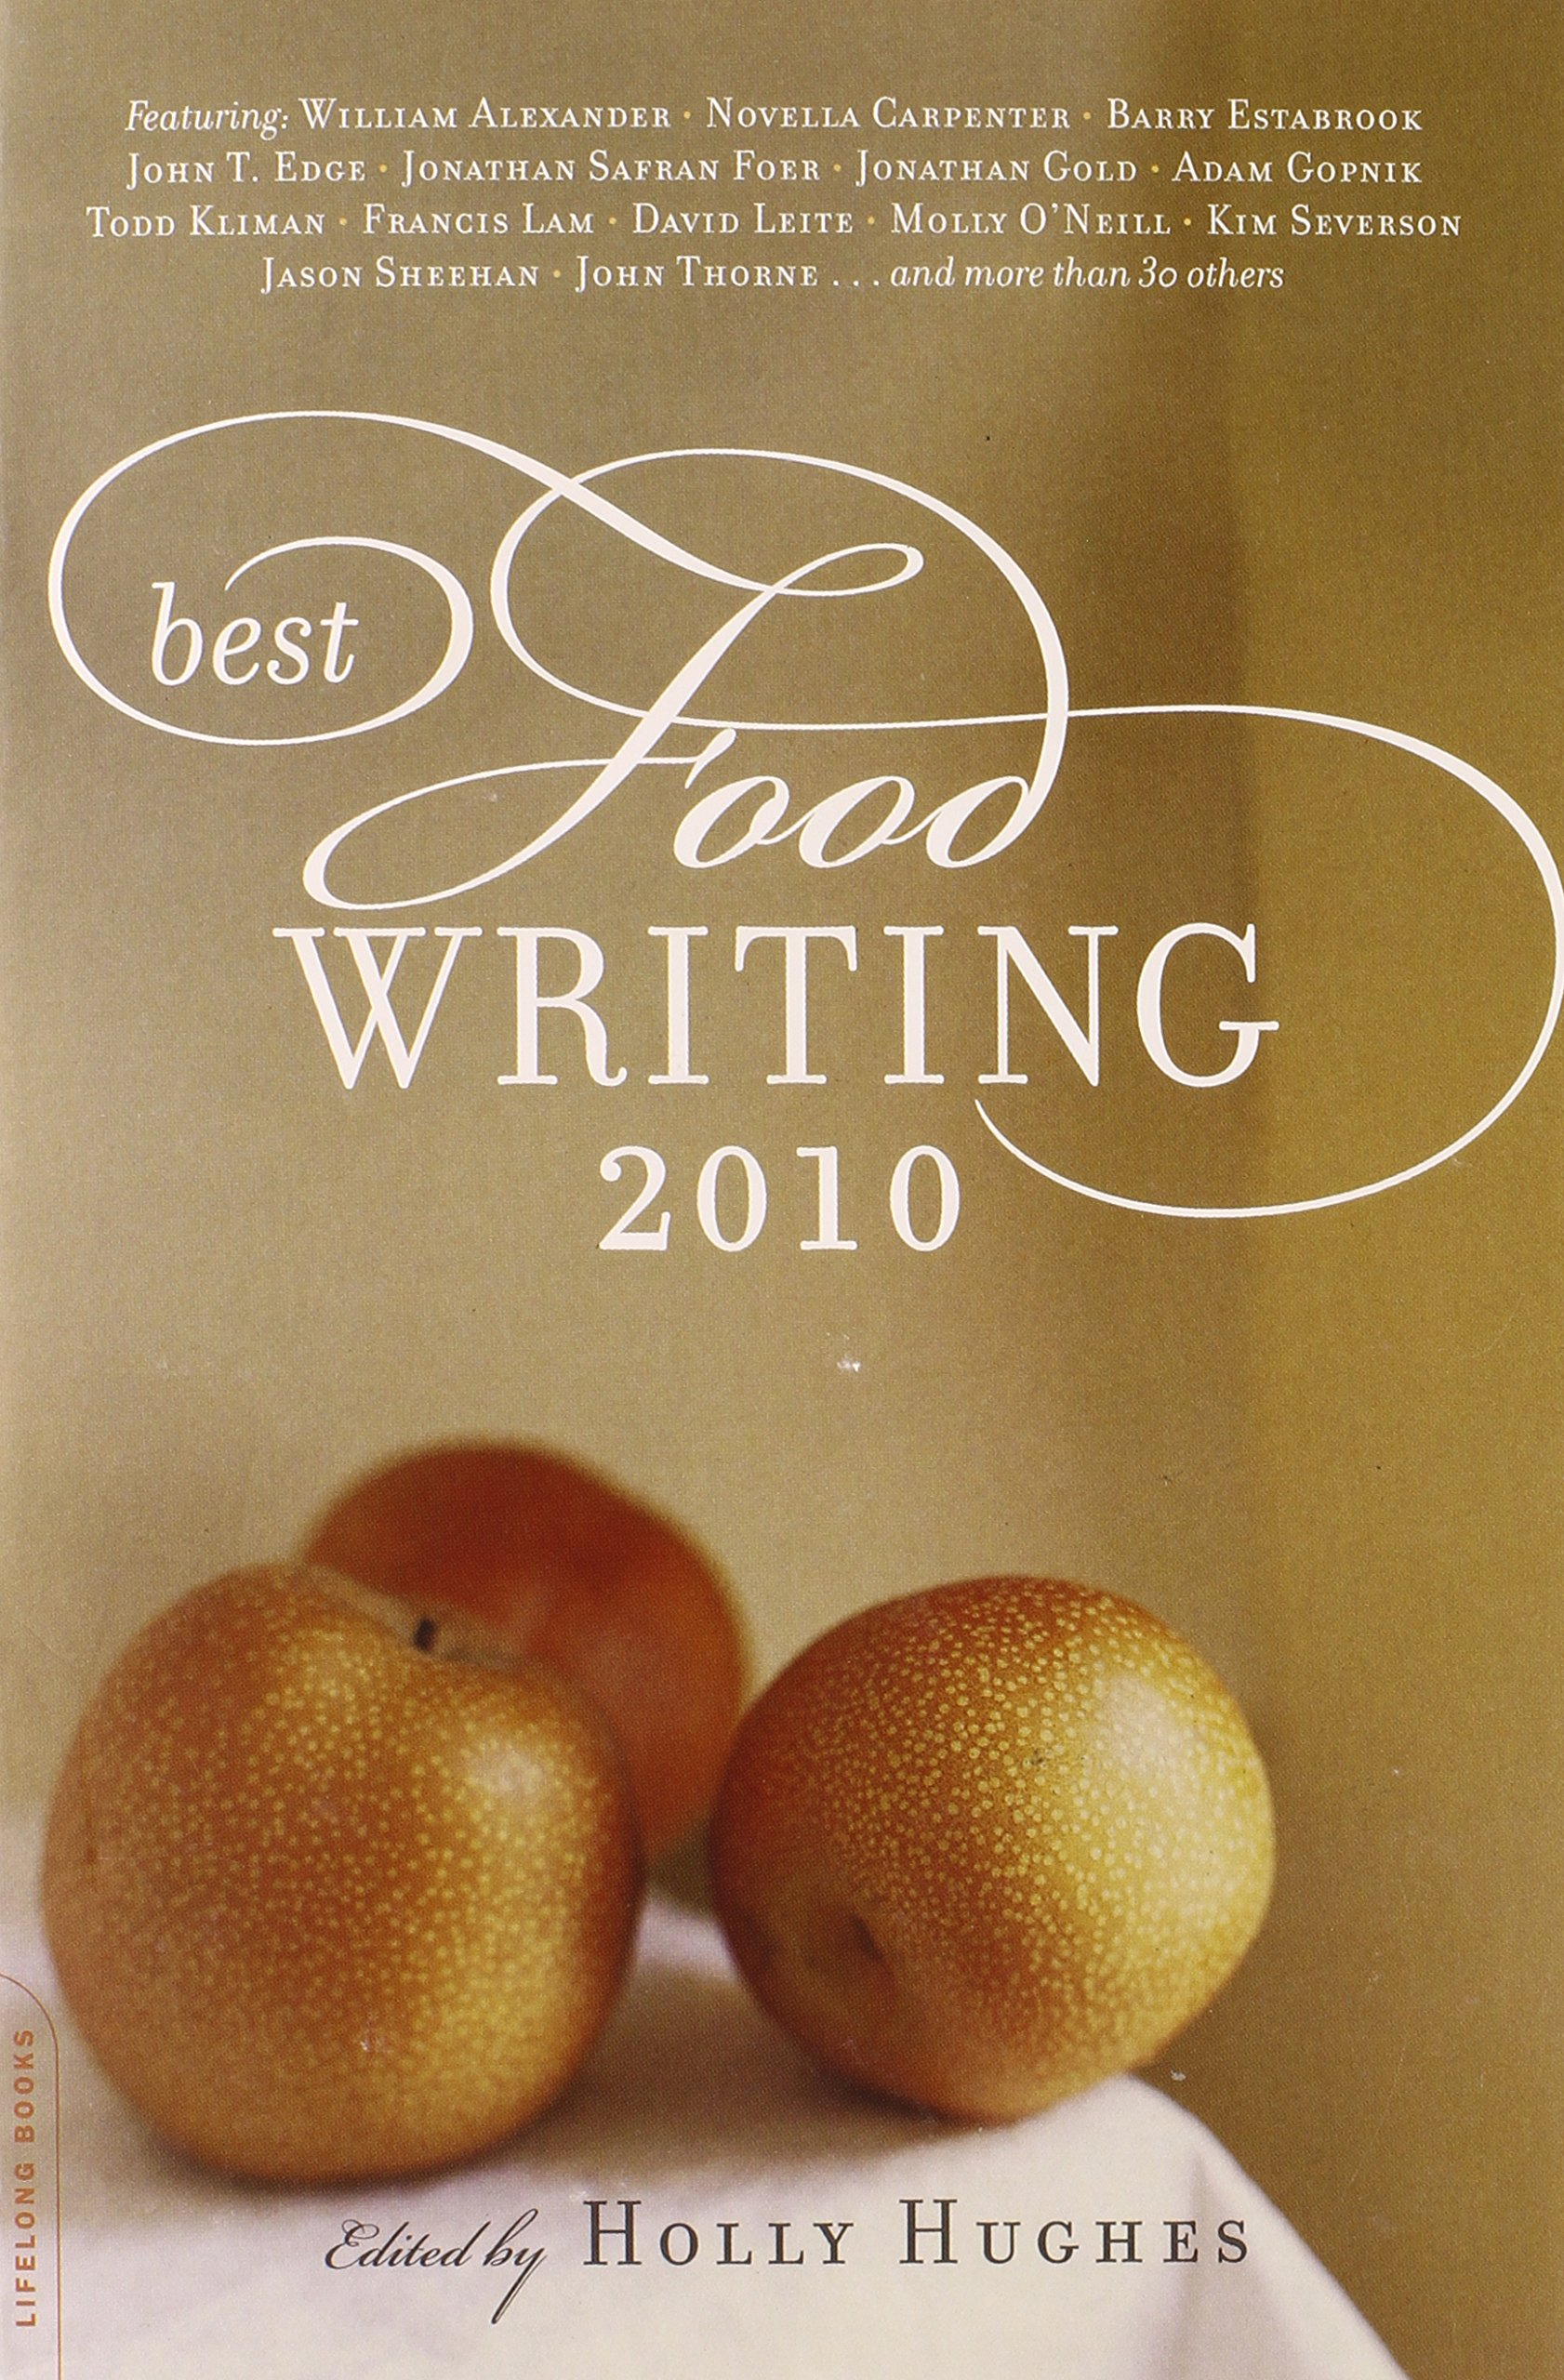 Best food writing books